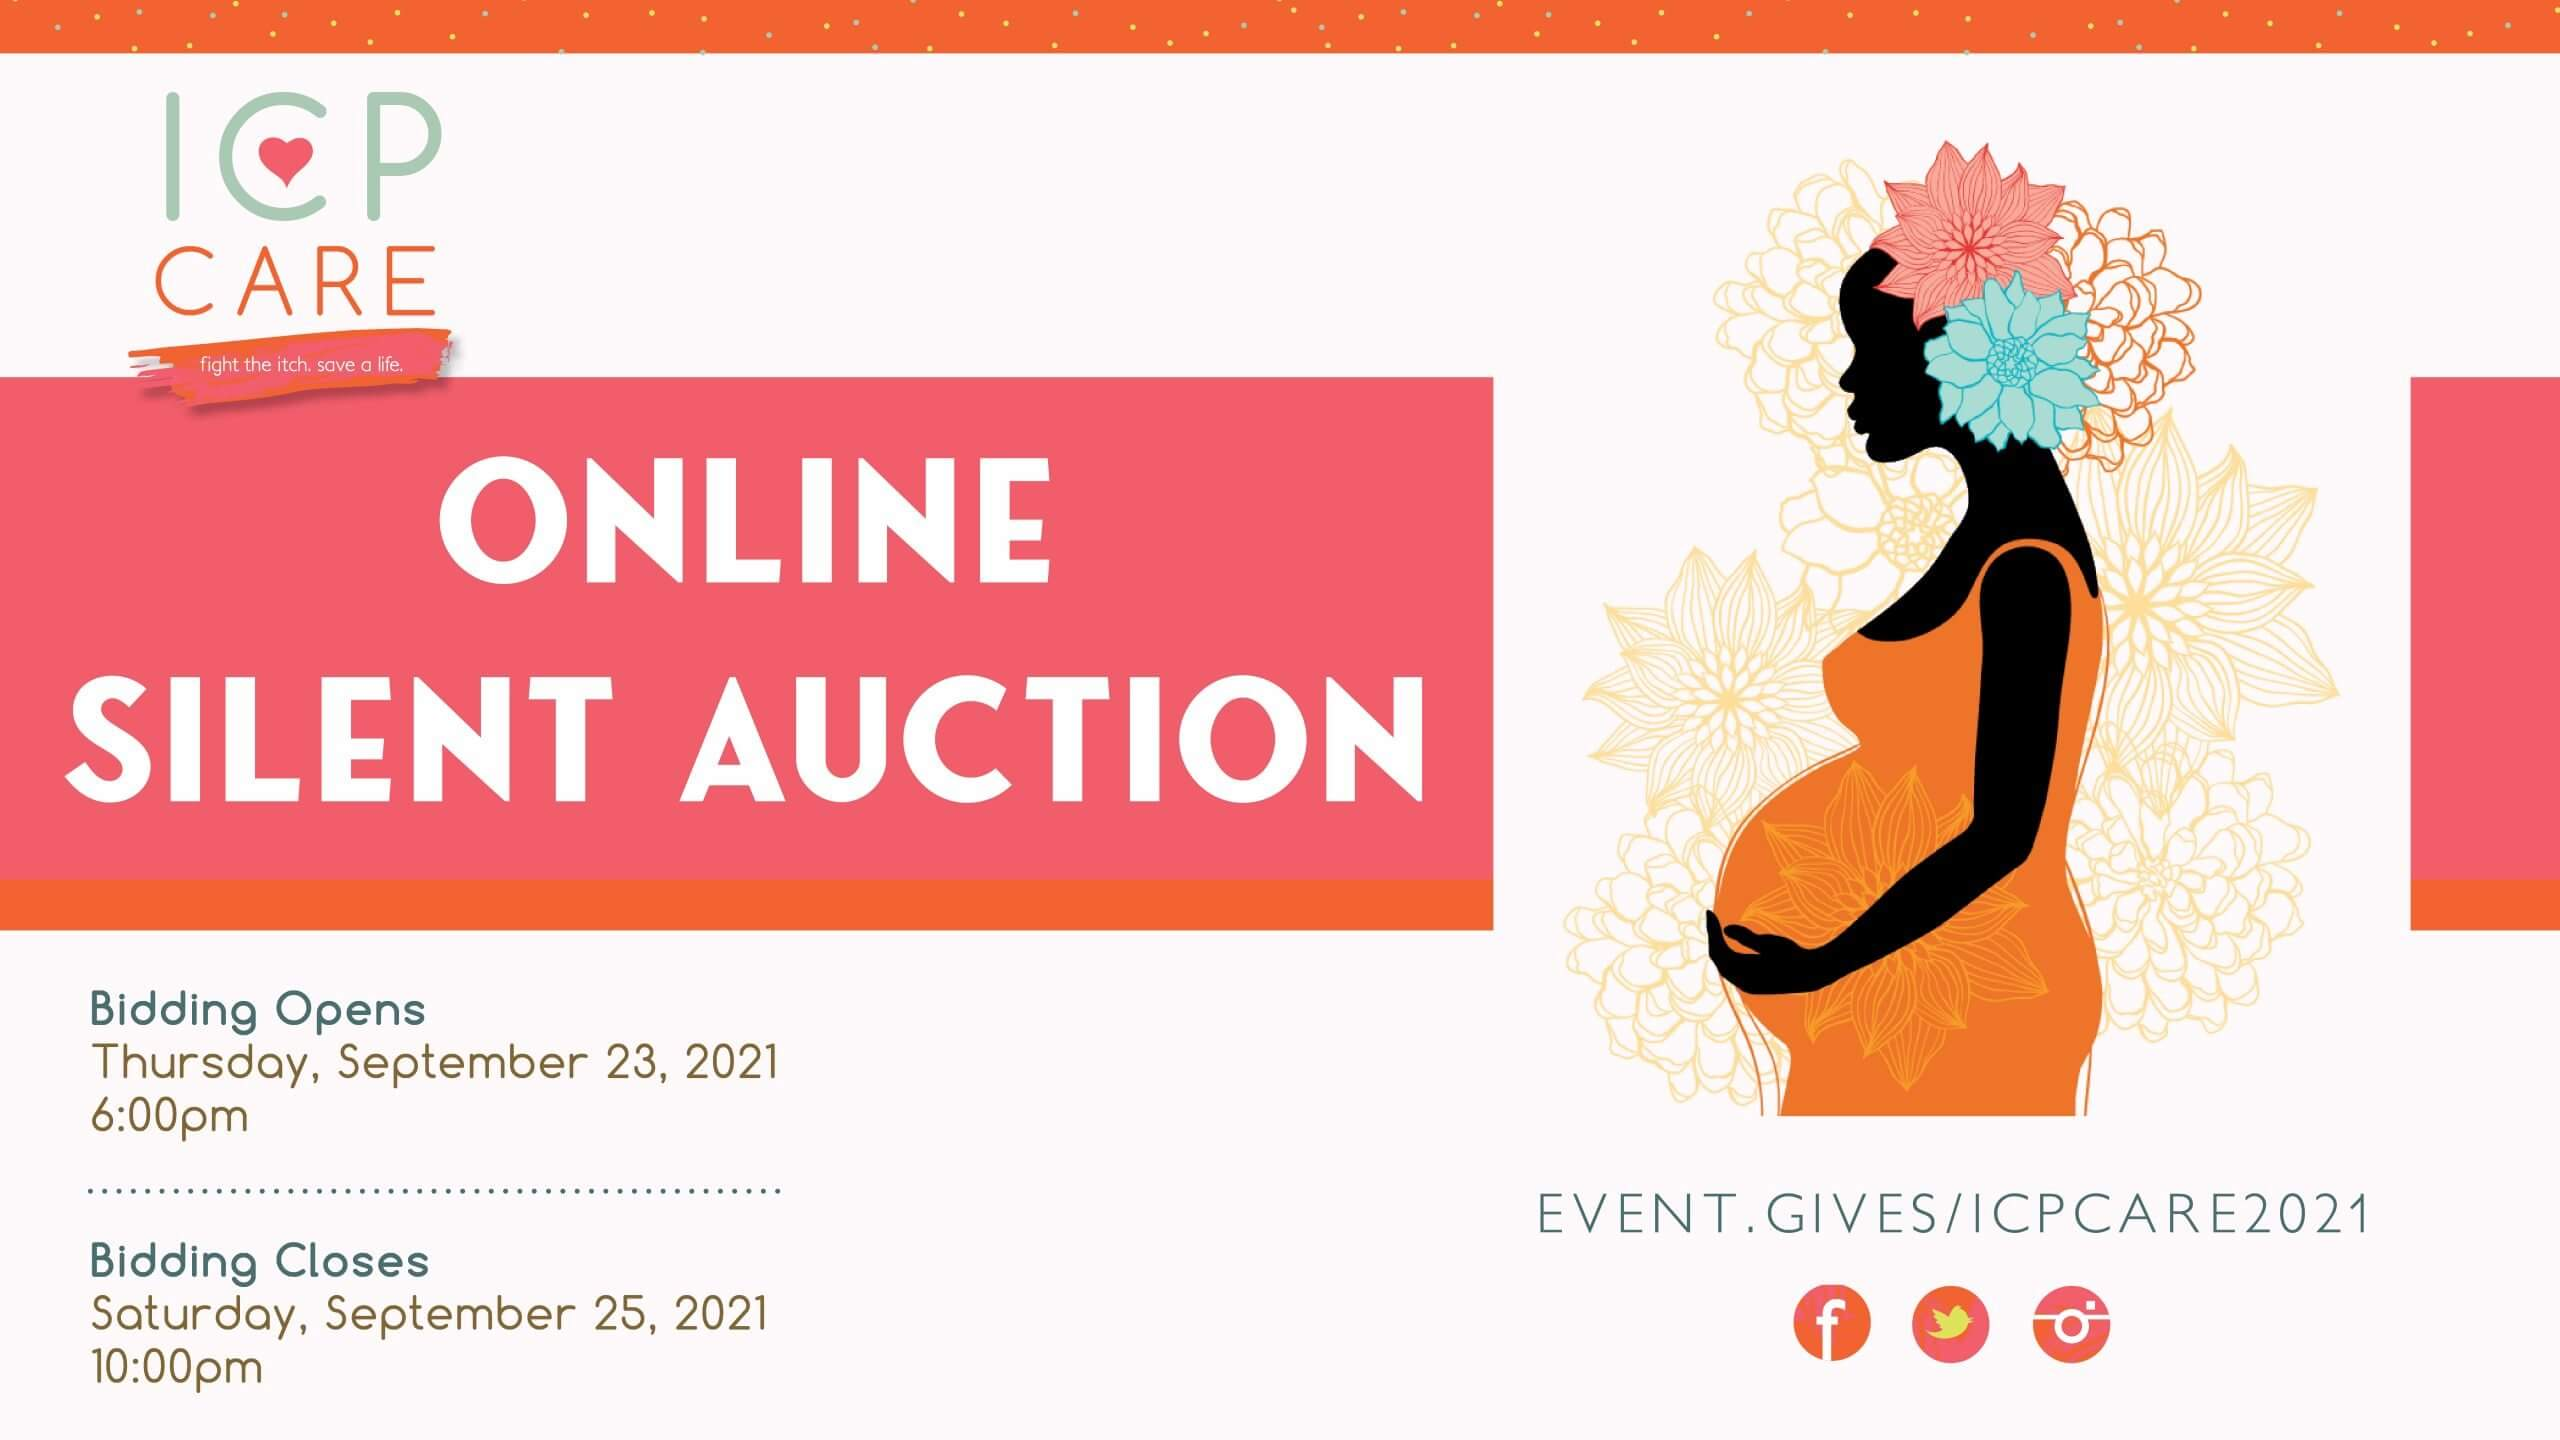 ICP Care Online Silent Auction 2021